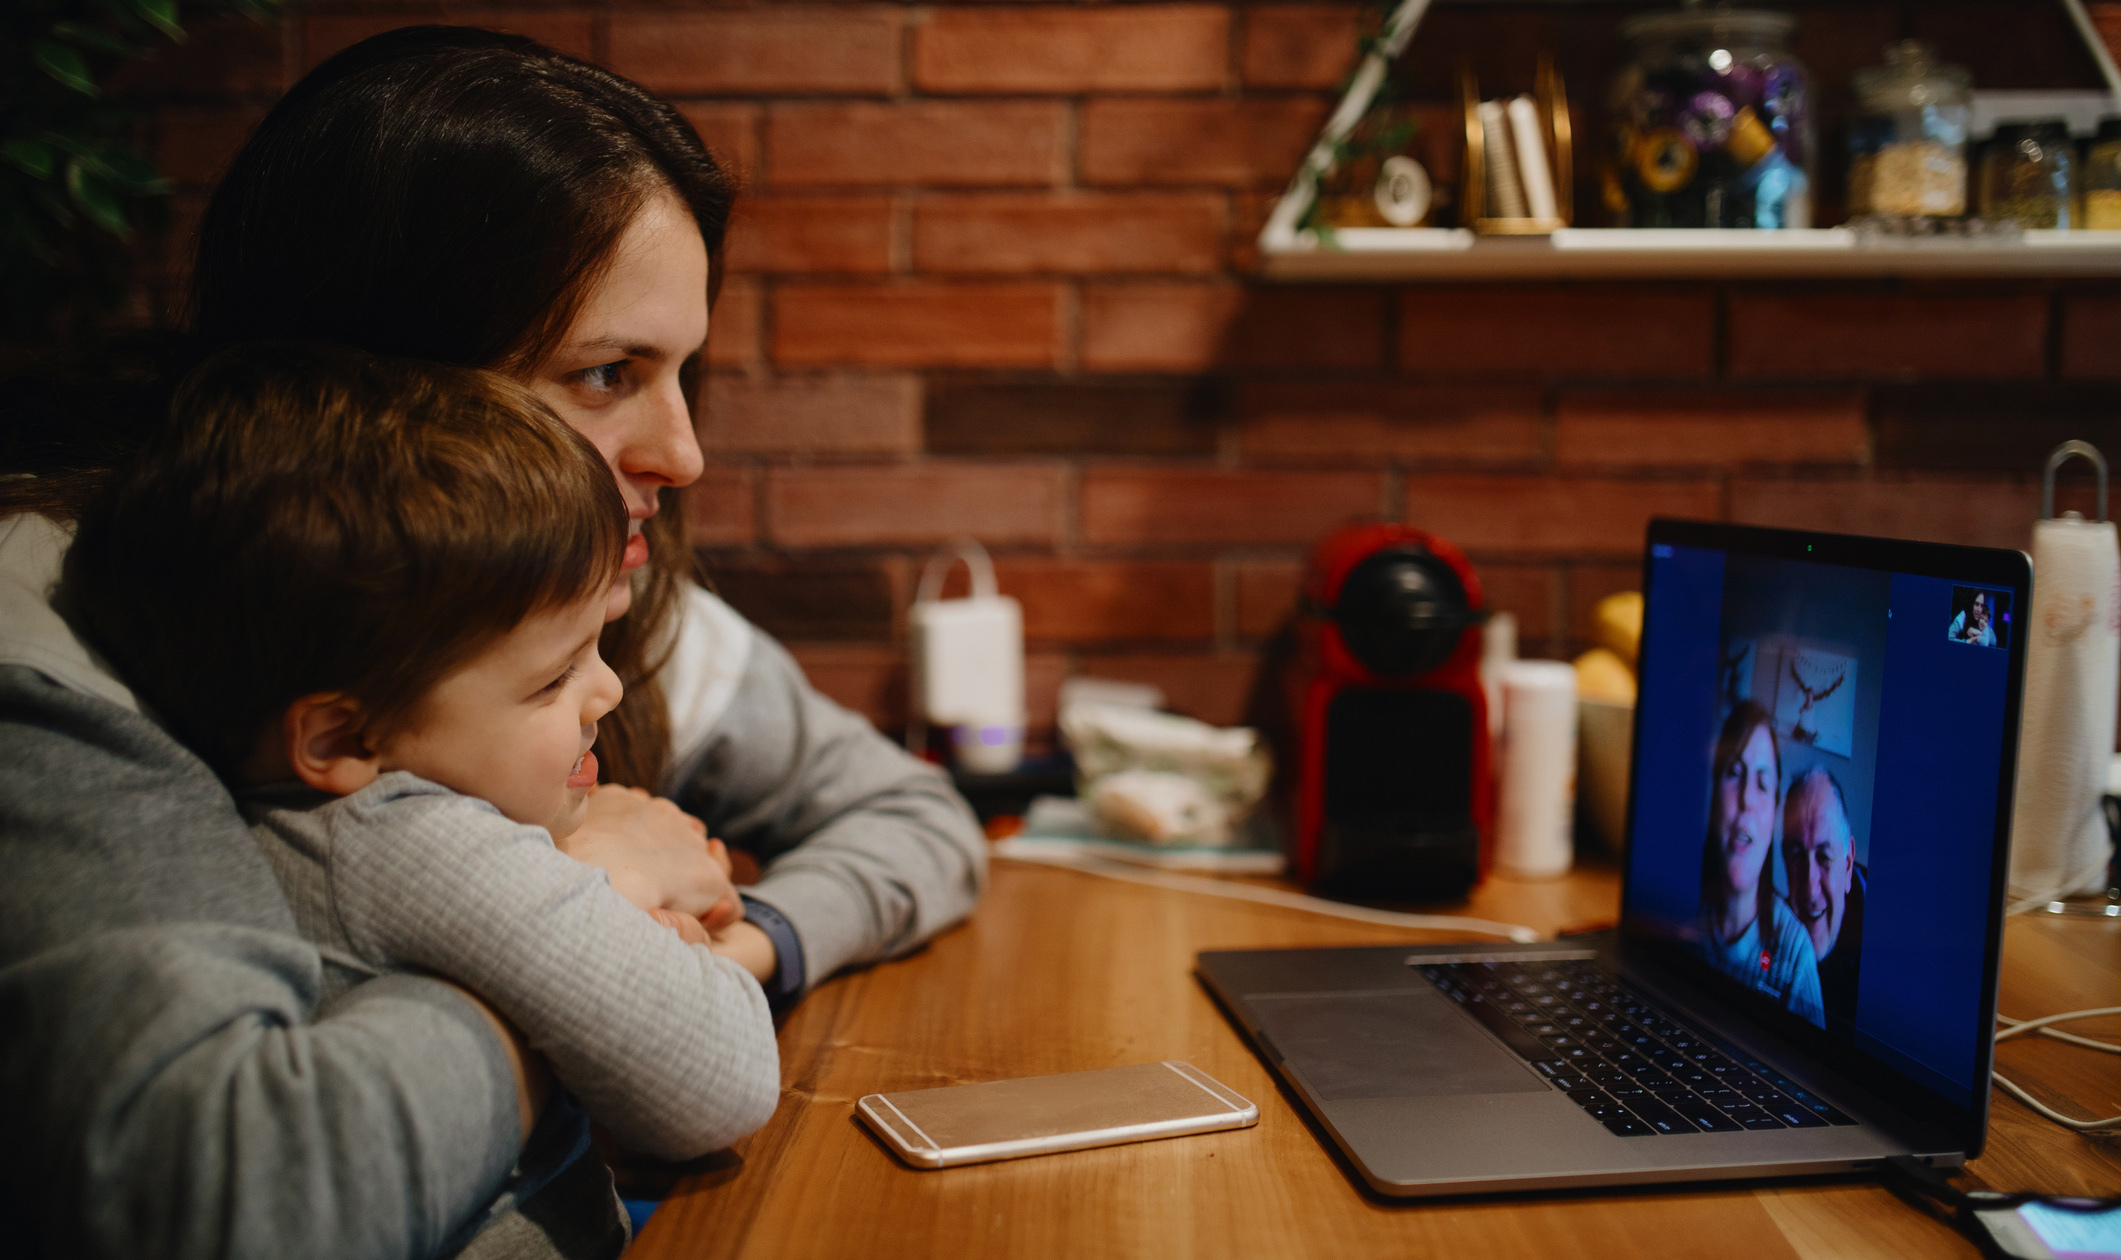 Why Video Chats are So Popular